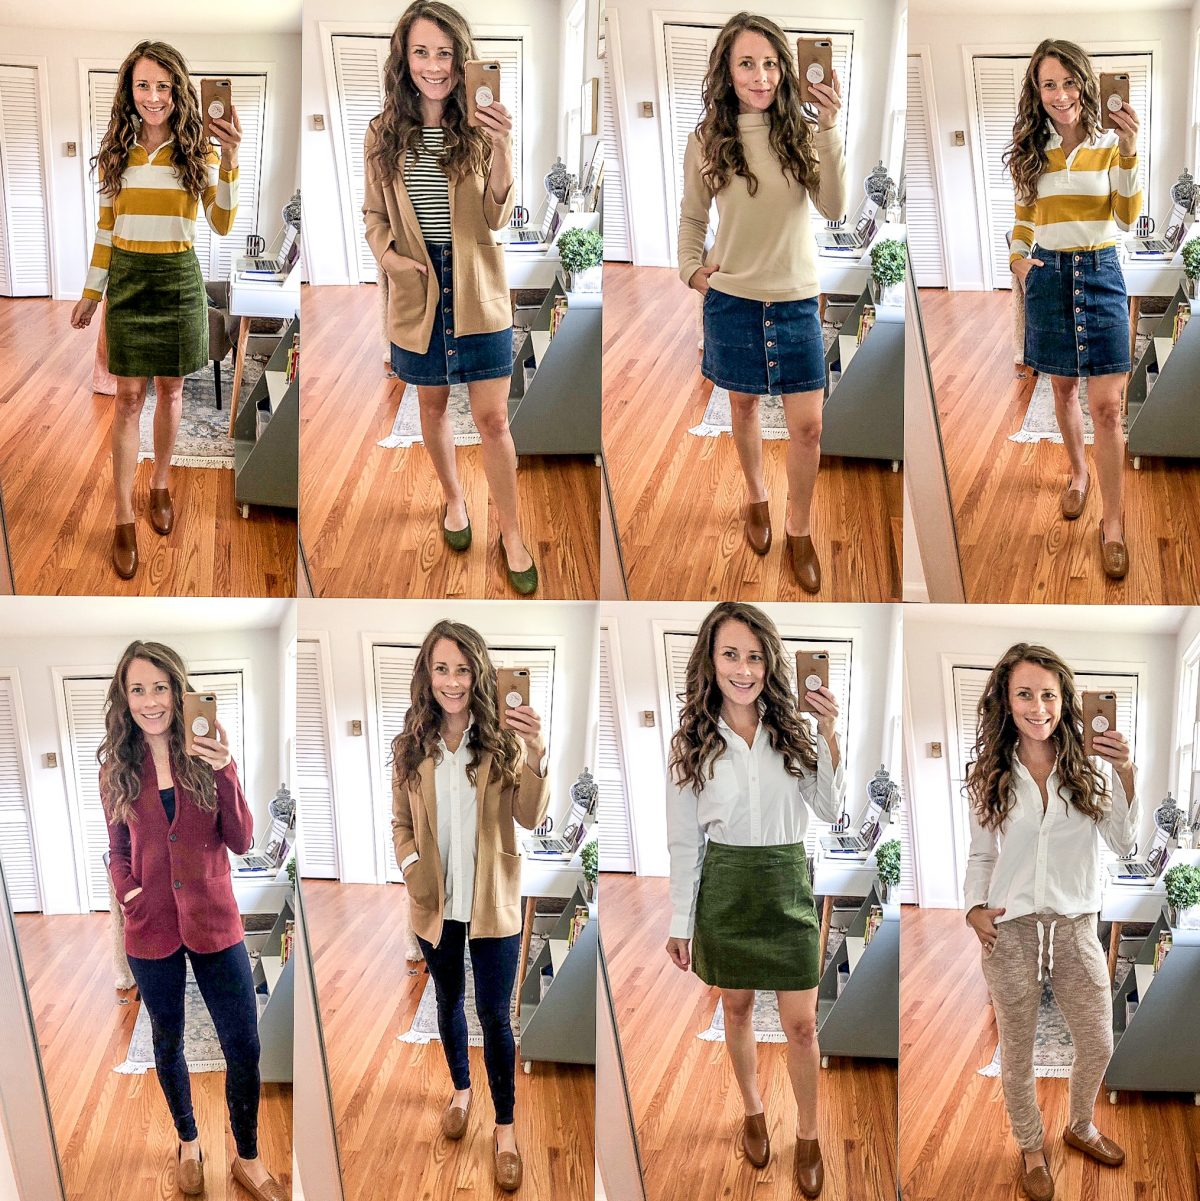 Fall Style 2019 | September Style Session with Jean Skirt, Corduroy Skirt, Sweater Blazer, and White Button Up